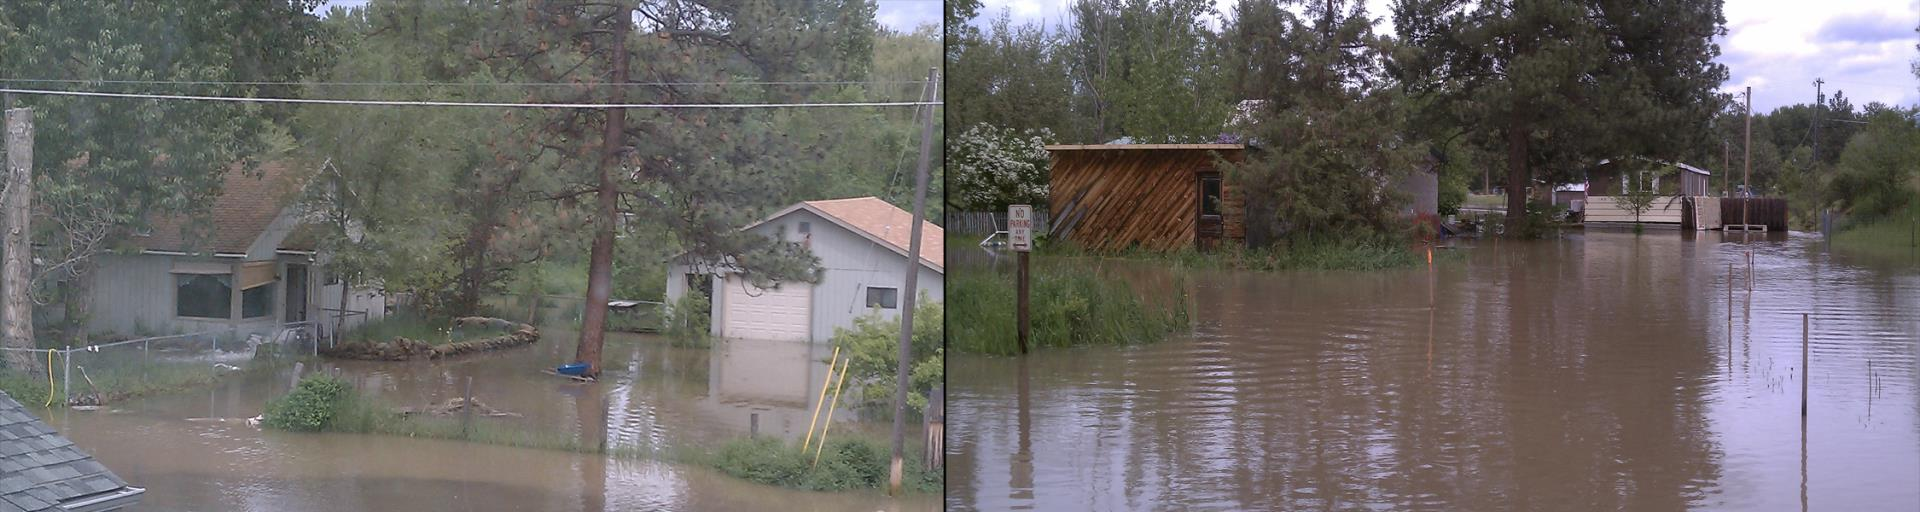 Residences flooded within Missoula County from 2011.